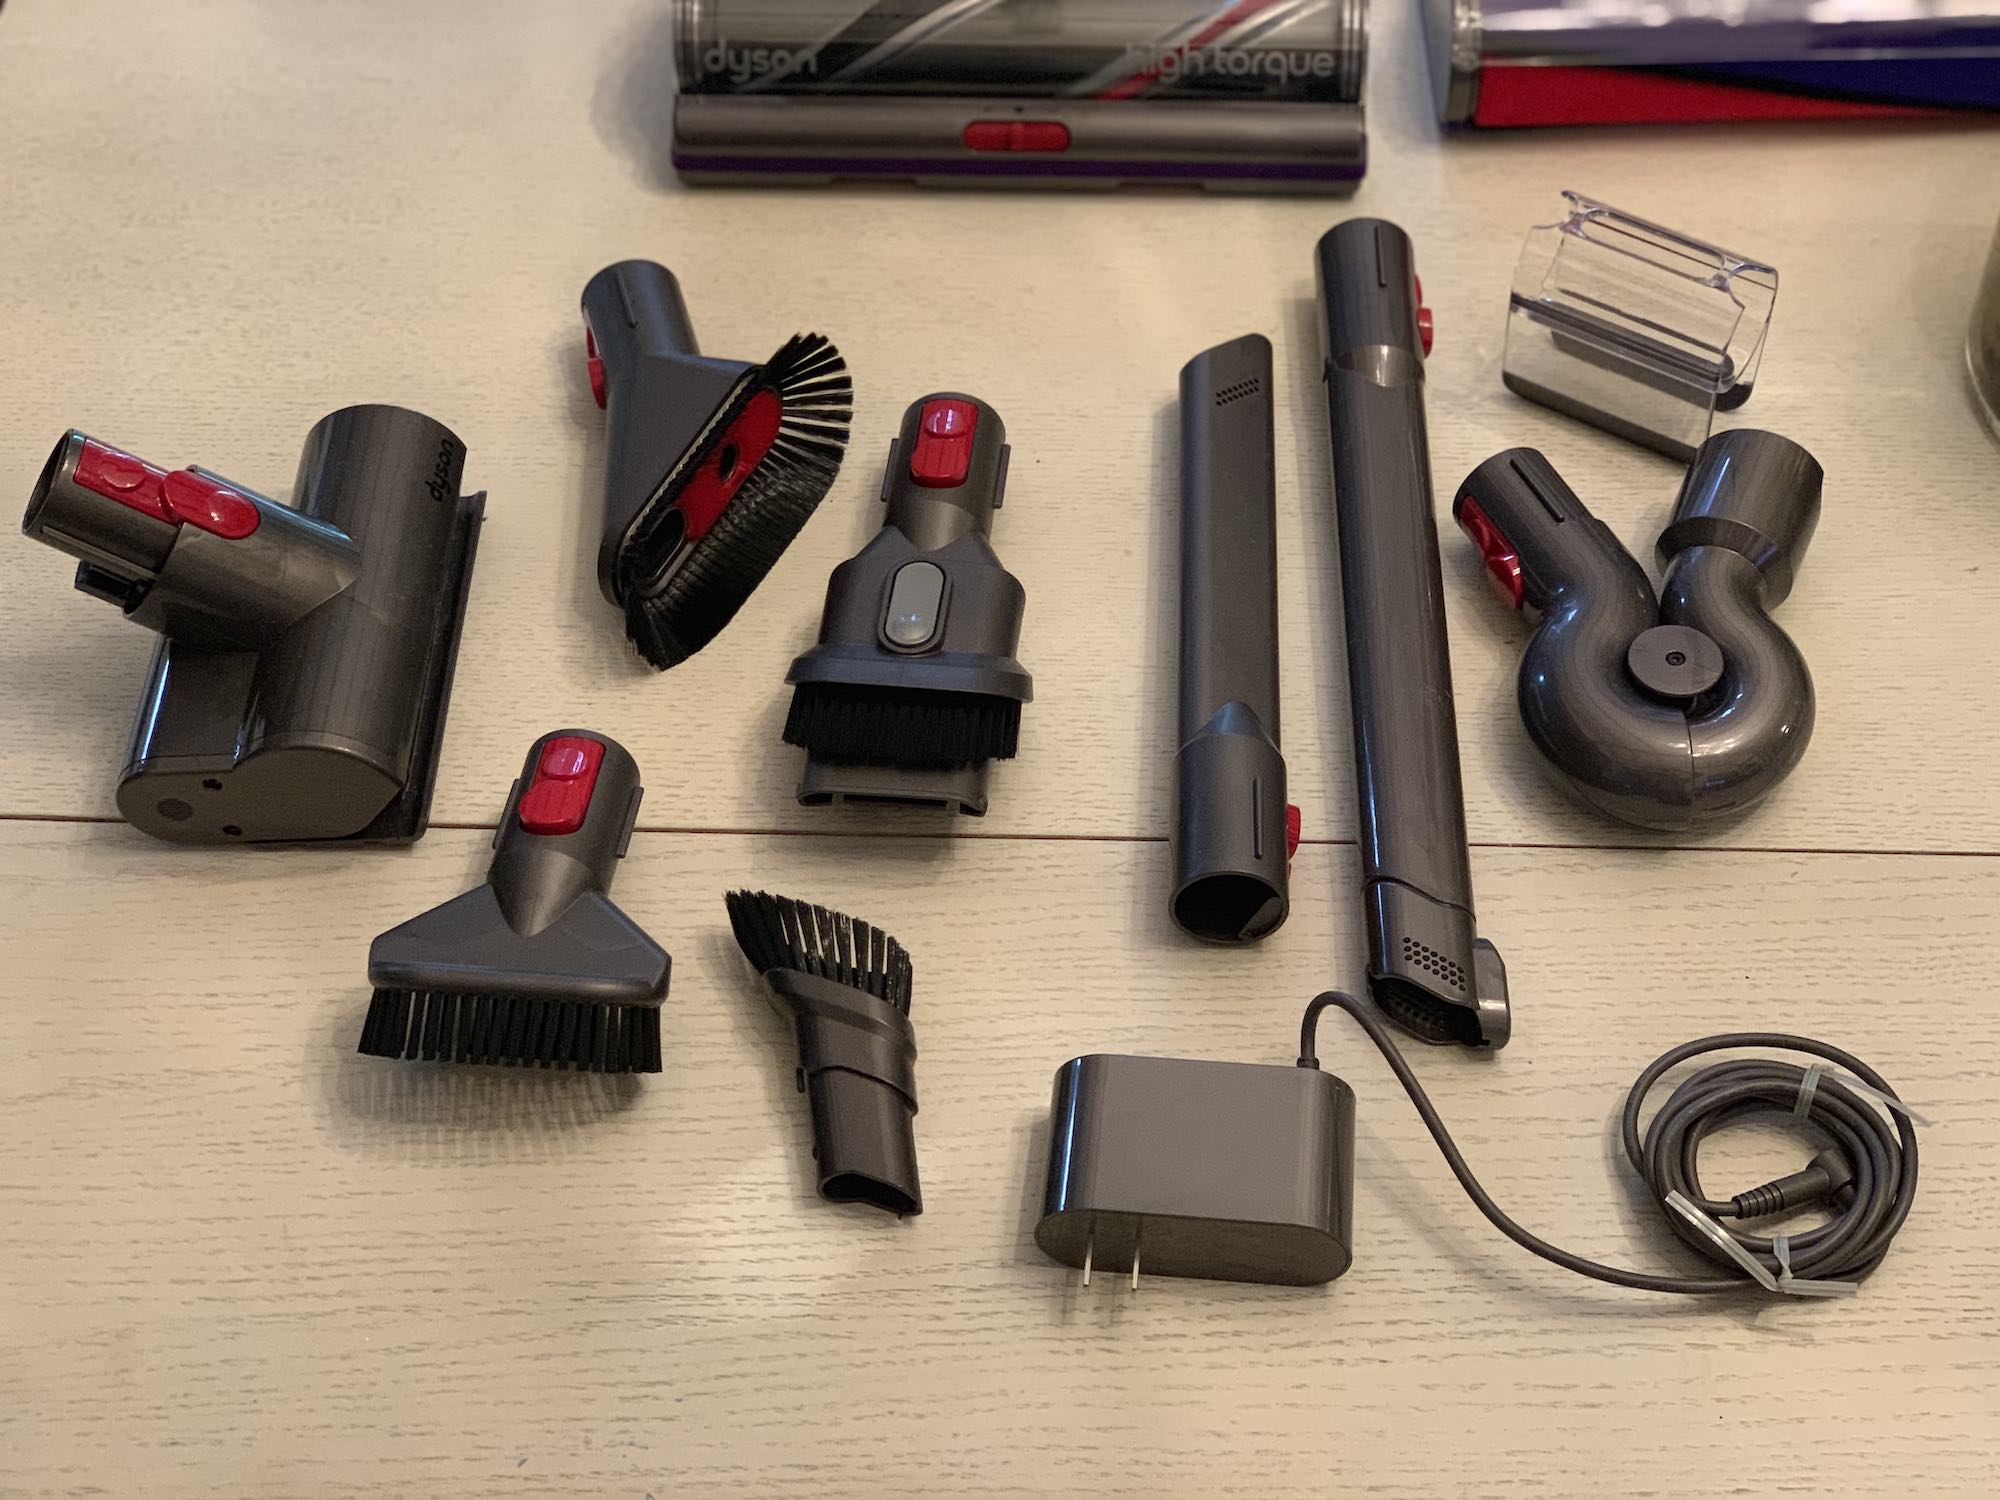 Dyson V11 Absolute Pro Stick Vacuum Review